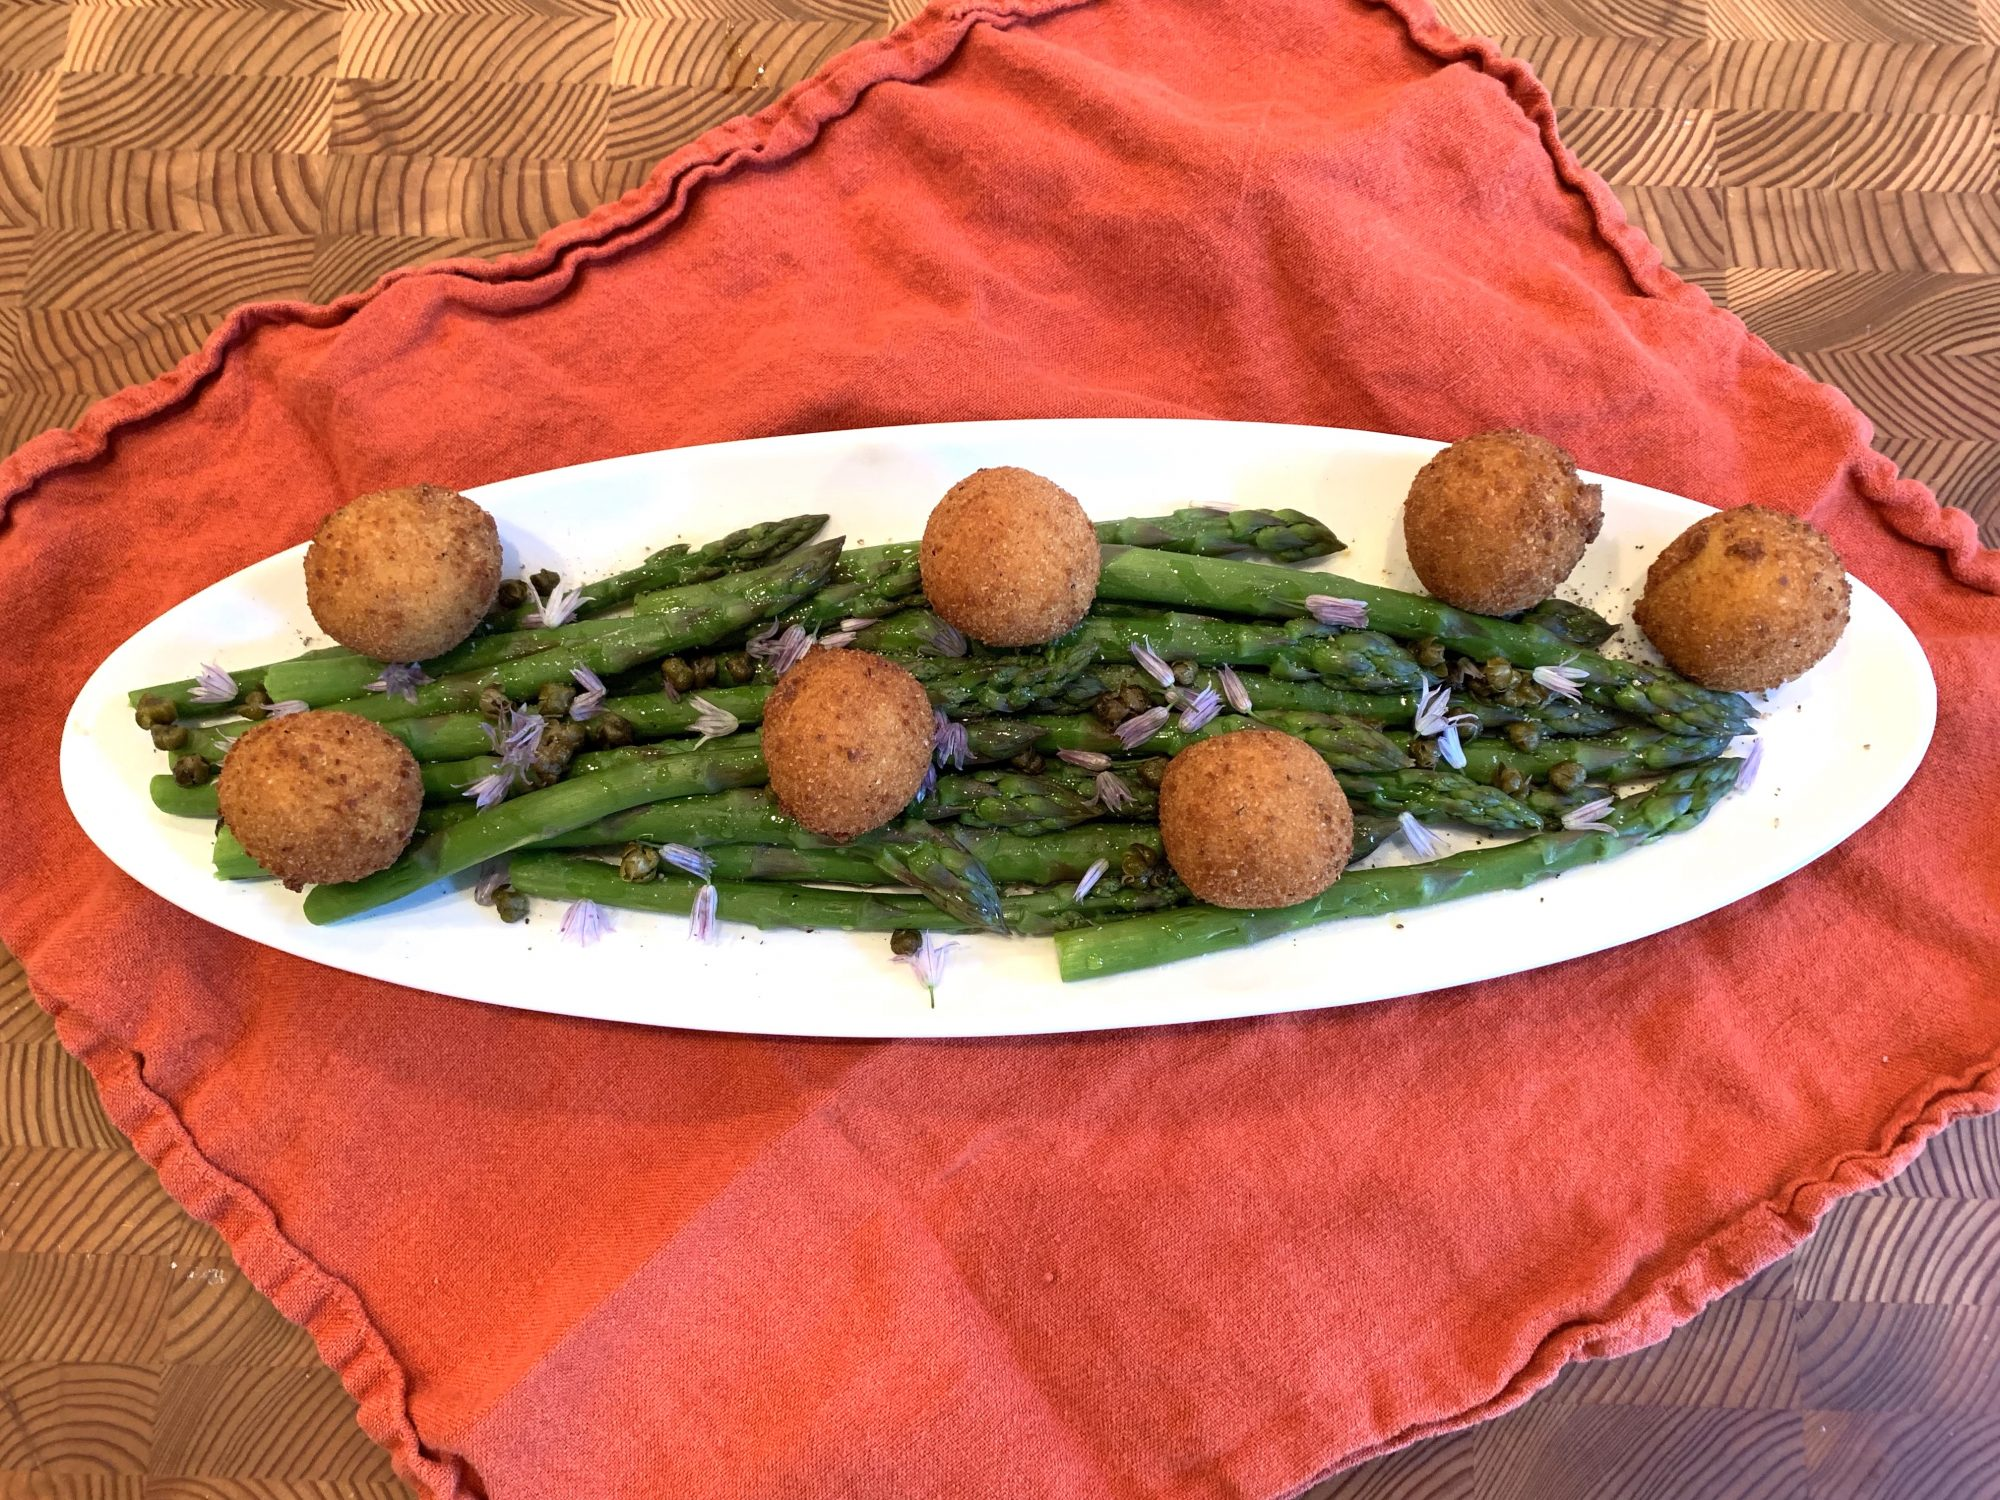 Asparagus and Fried Goat Cheese Balls: A Love Affair